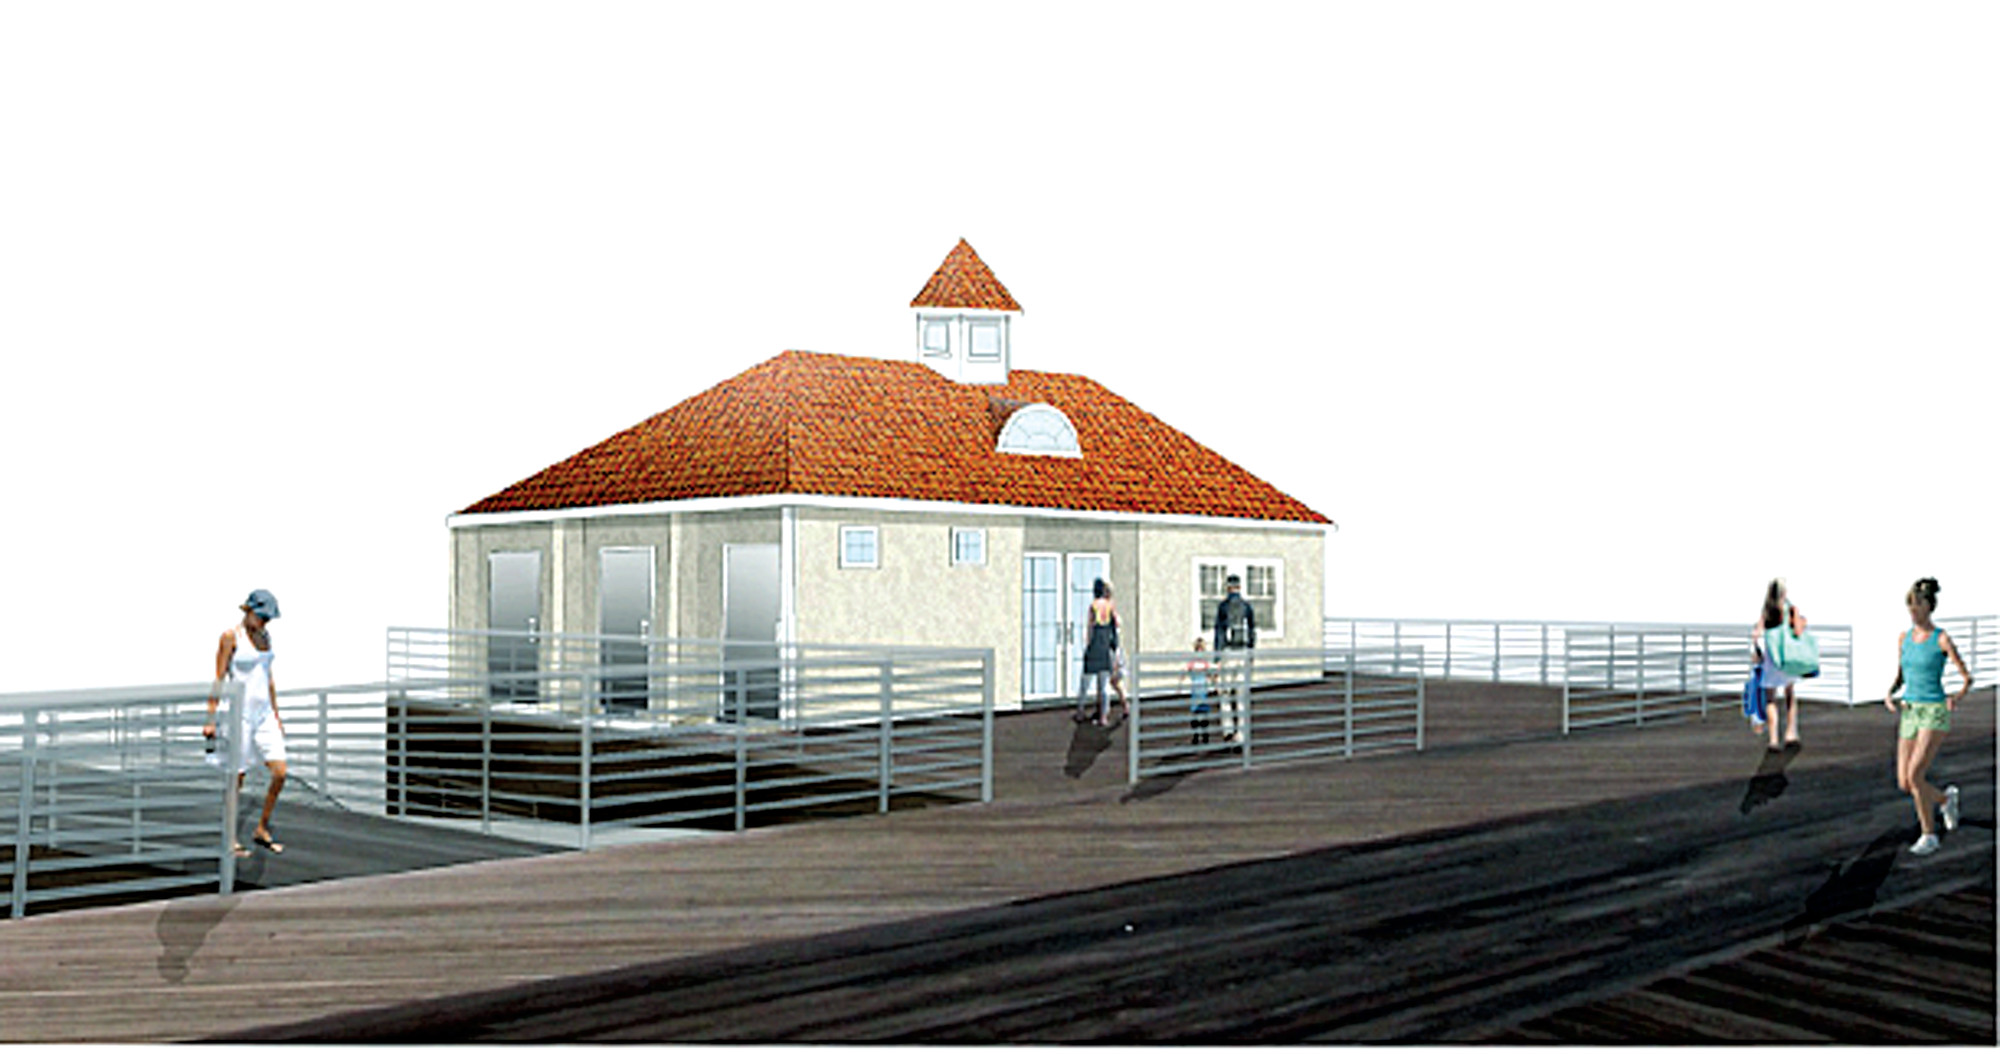 This planned comfort station at National Boulevard will feature three ADA-compliant bathrooms and a police substation at the boardwalk level.